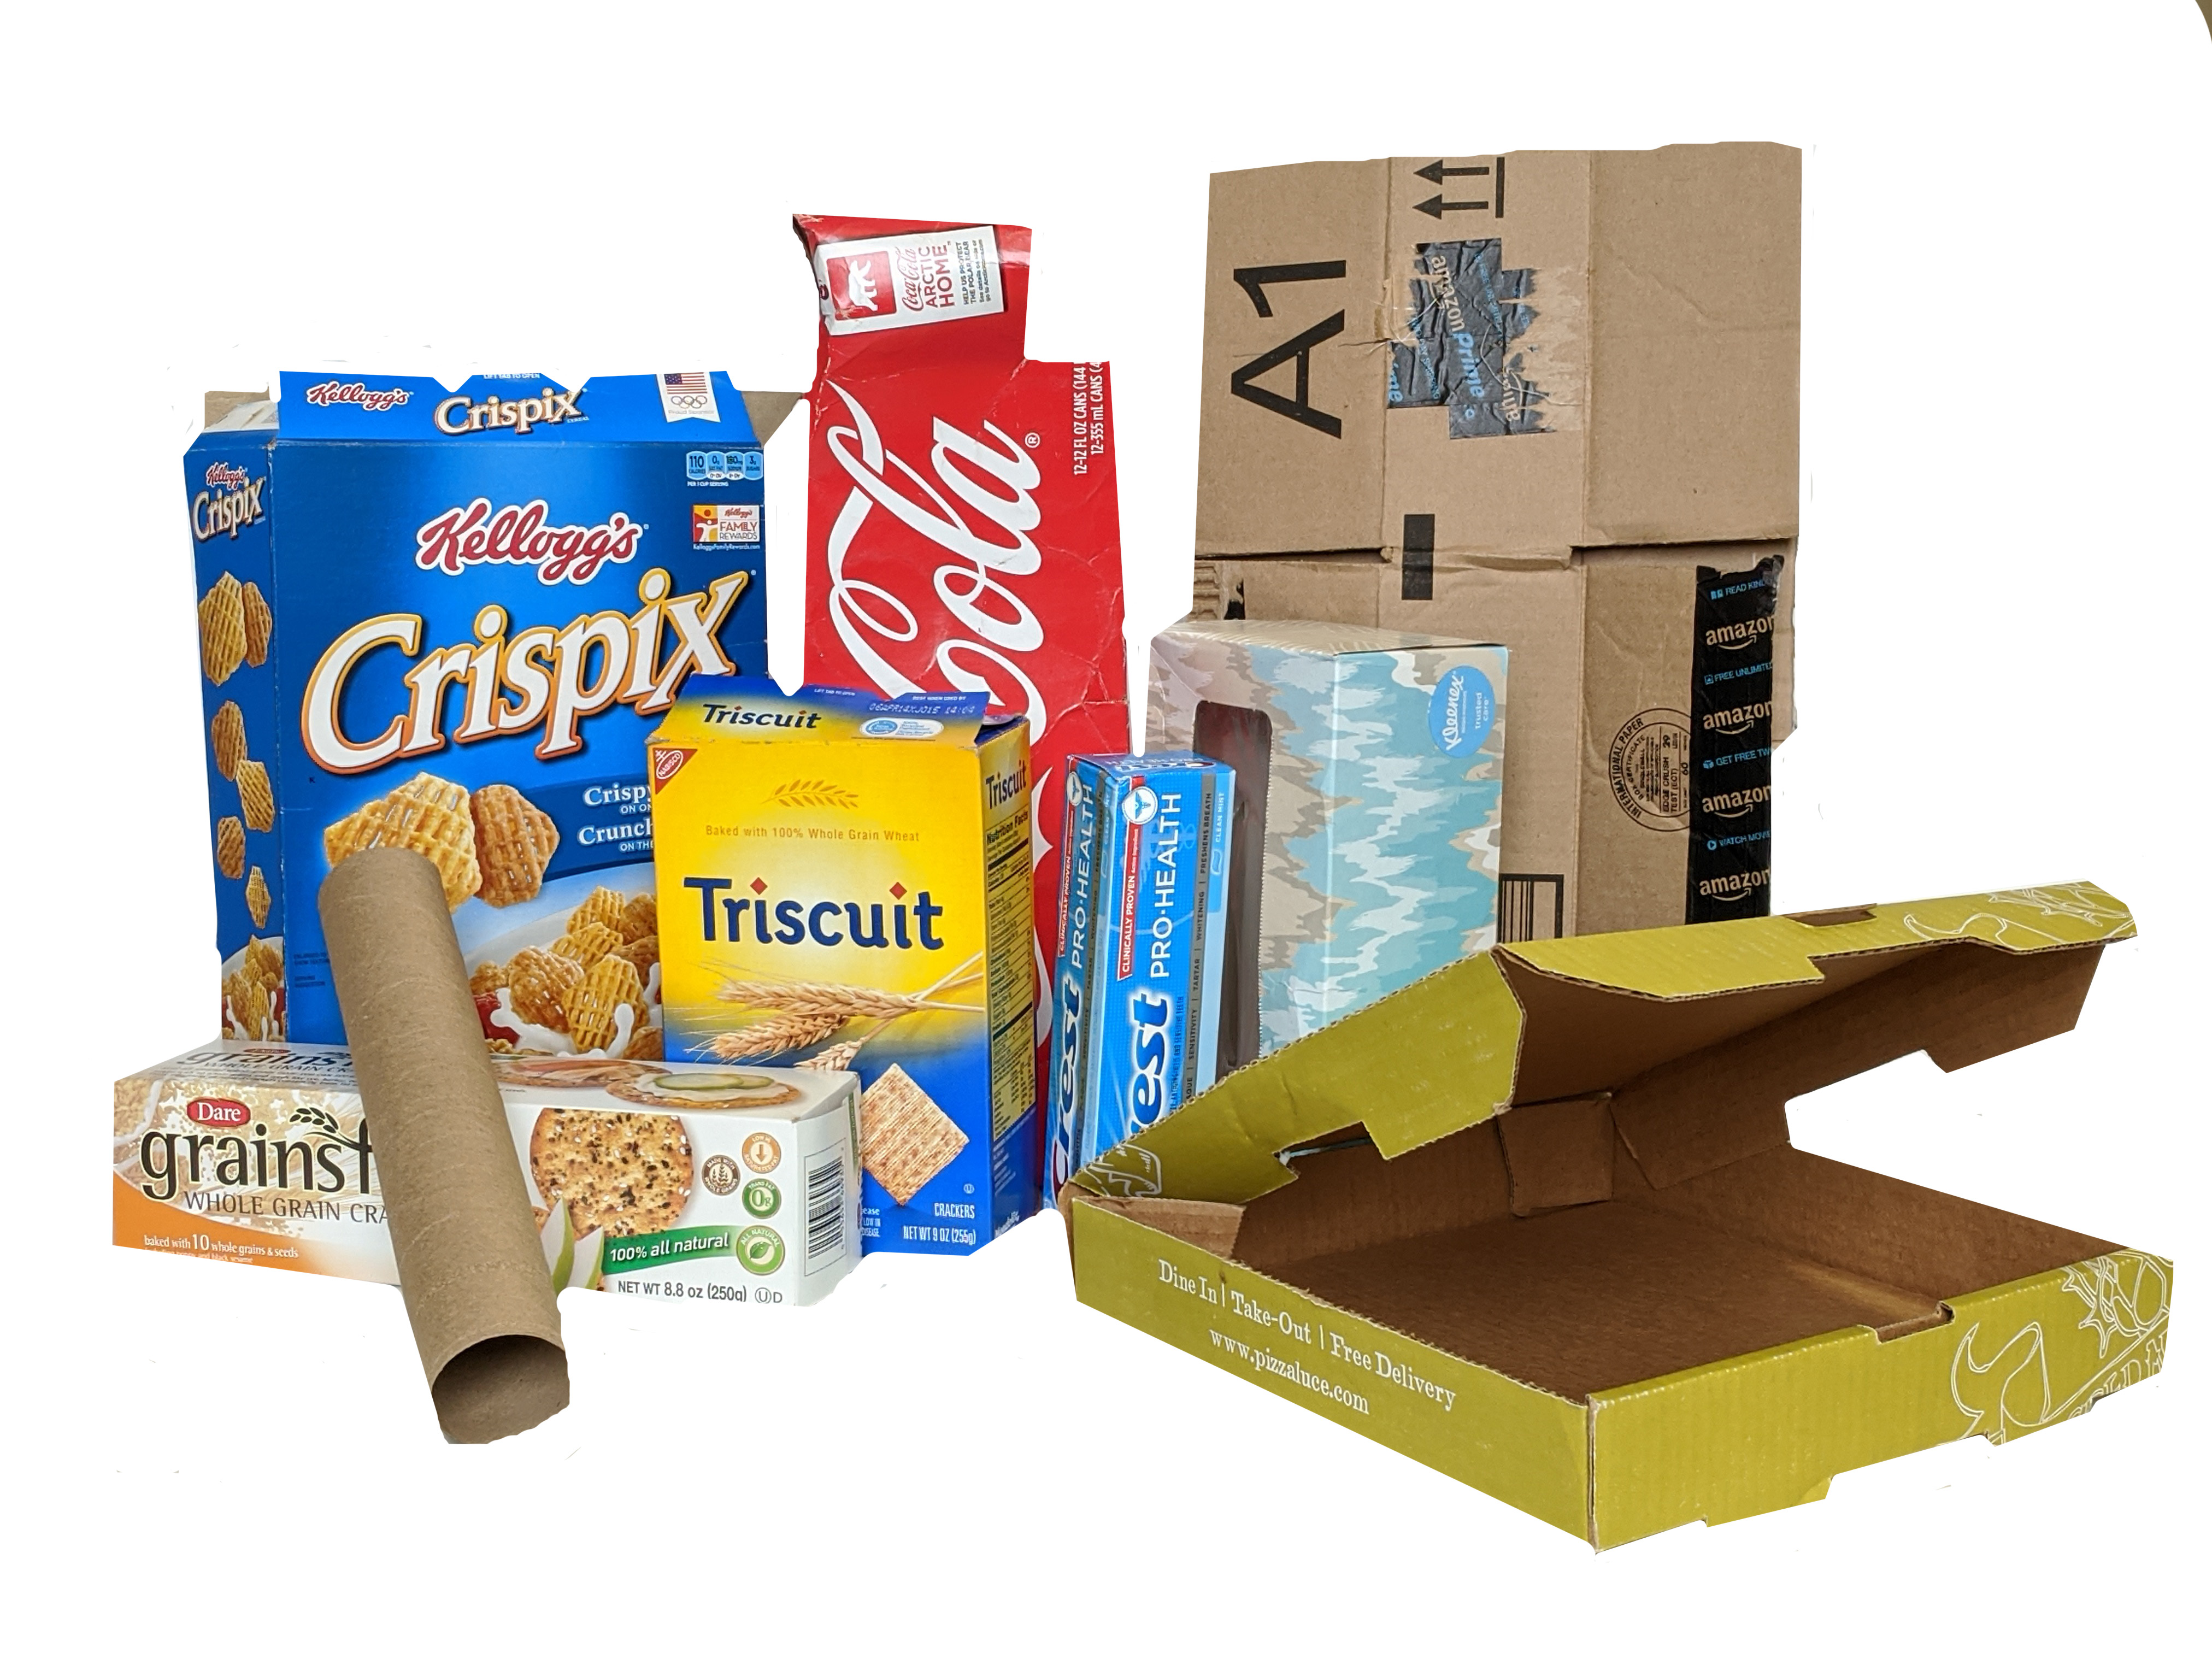 cardboard boxes (cereal box, tissue box, delivery pizza box, toothpaste box, paper towel tube)